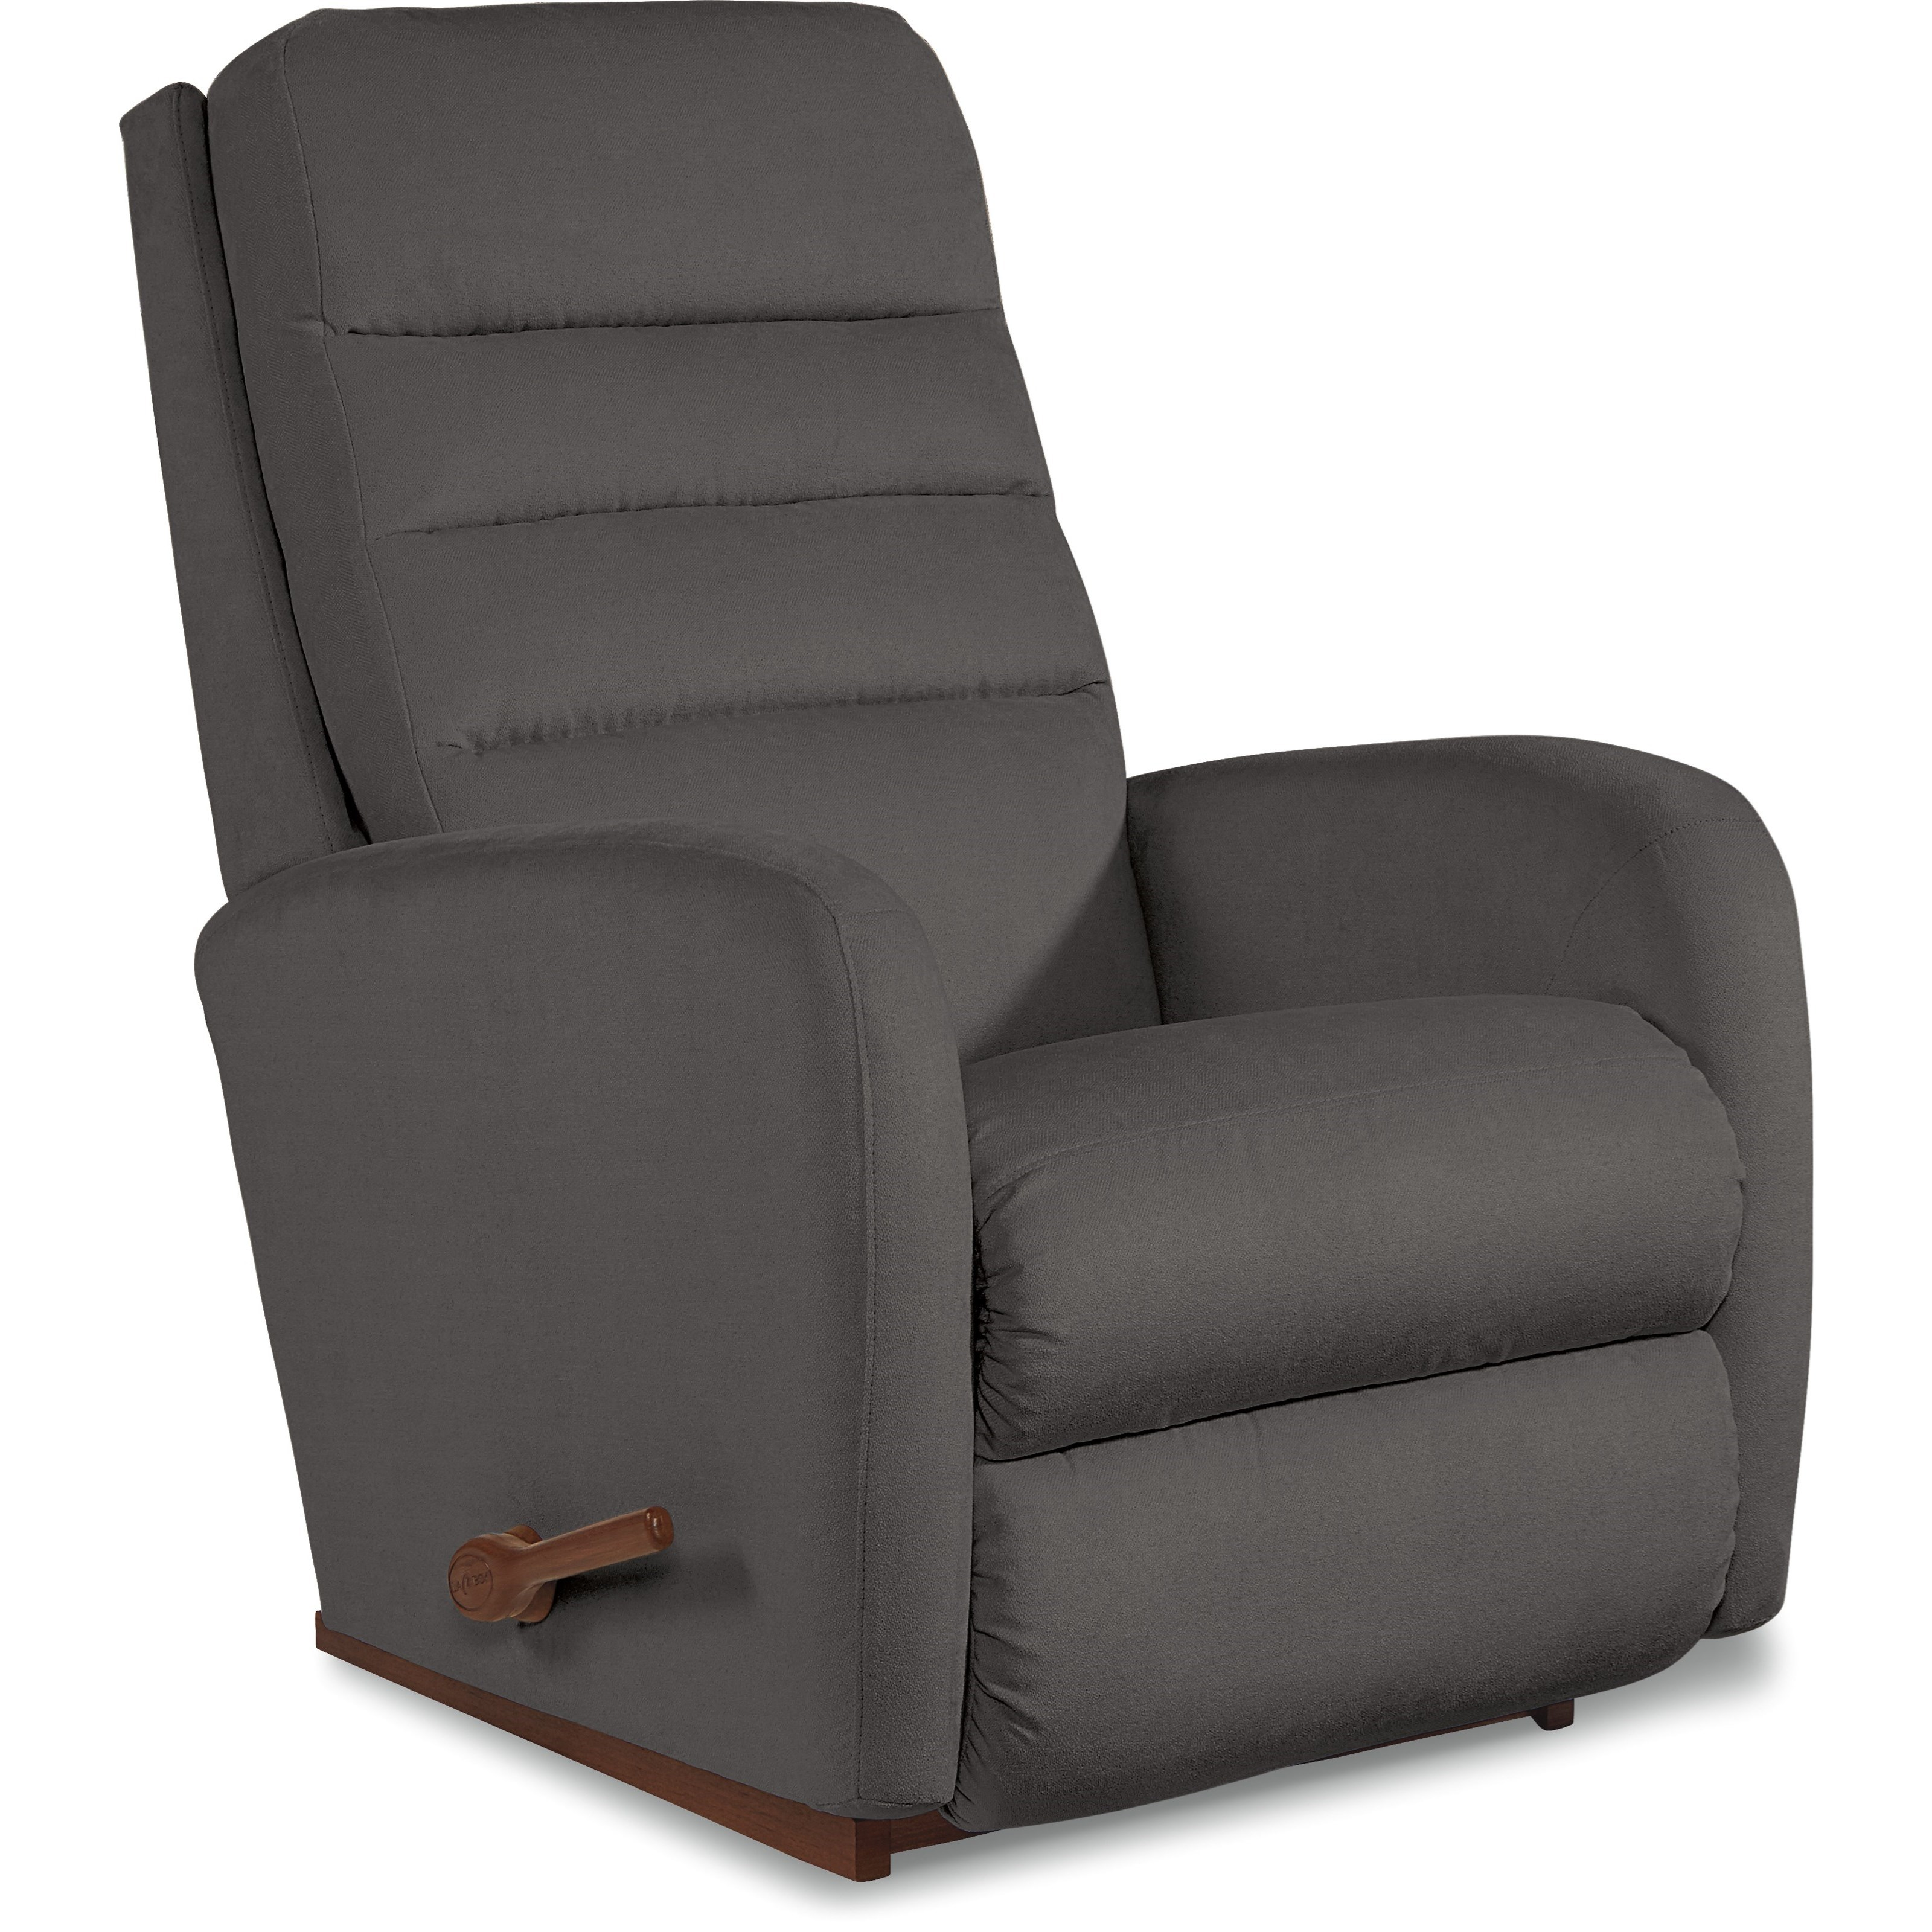 Forum Rocking Recliner by La-Z-Boy at Houston's Yuma Furniture